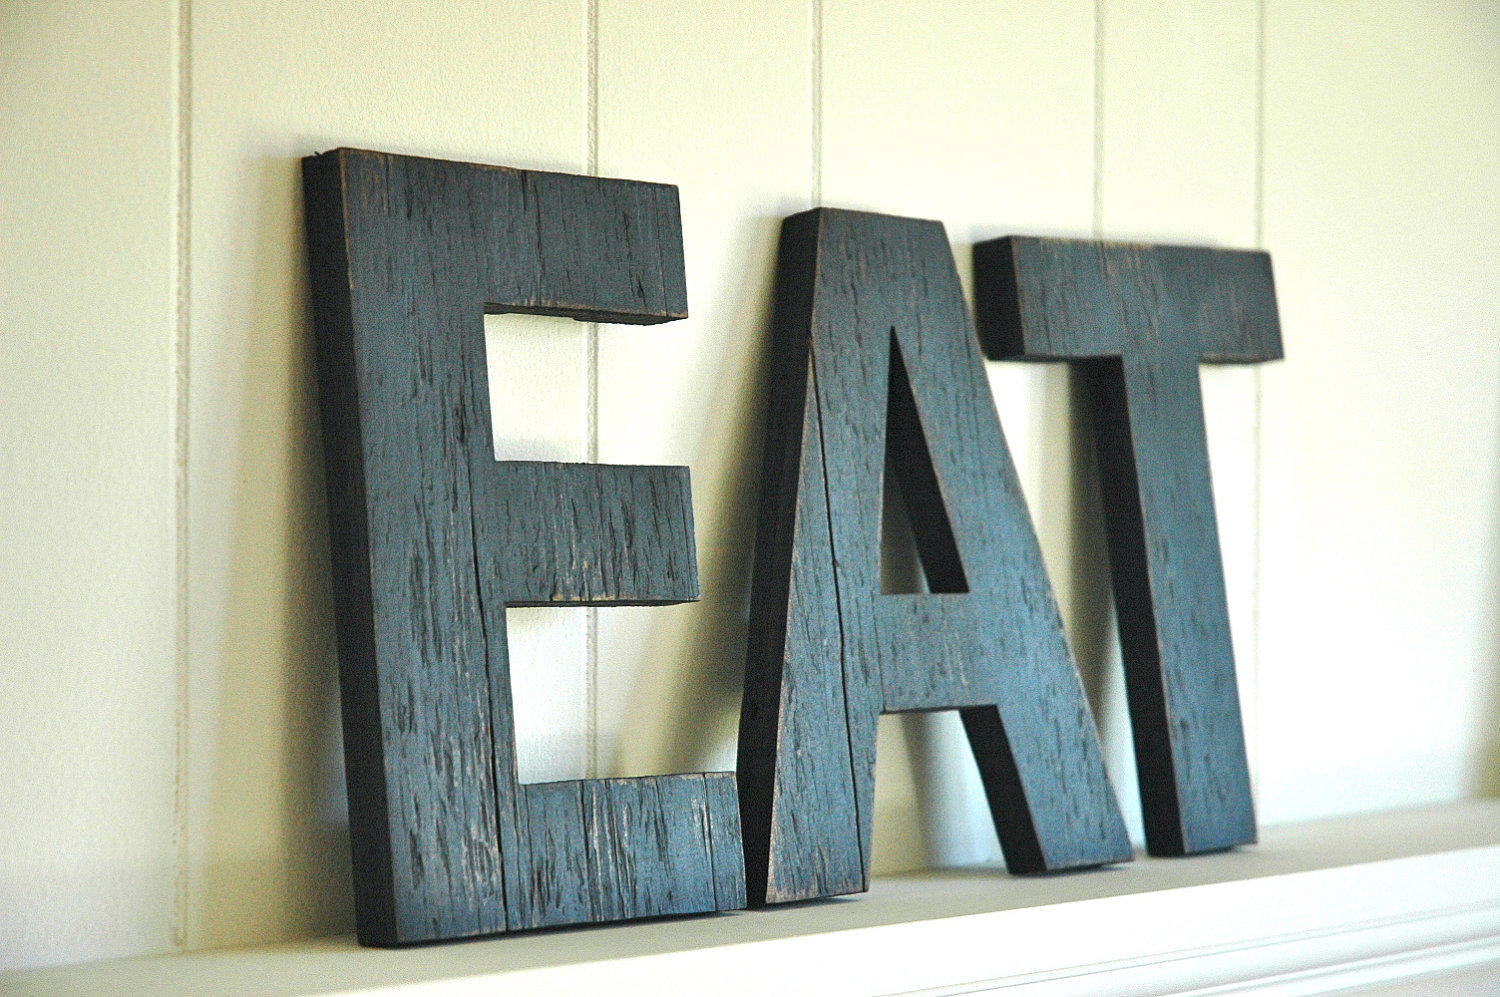 eat wall art large letters handmade wood from shophomegrown on. Black Bedroom Furniture Sets. Home Design Ideas